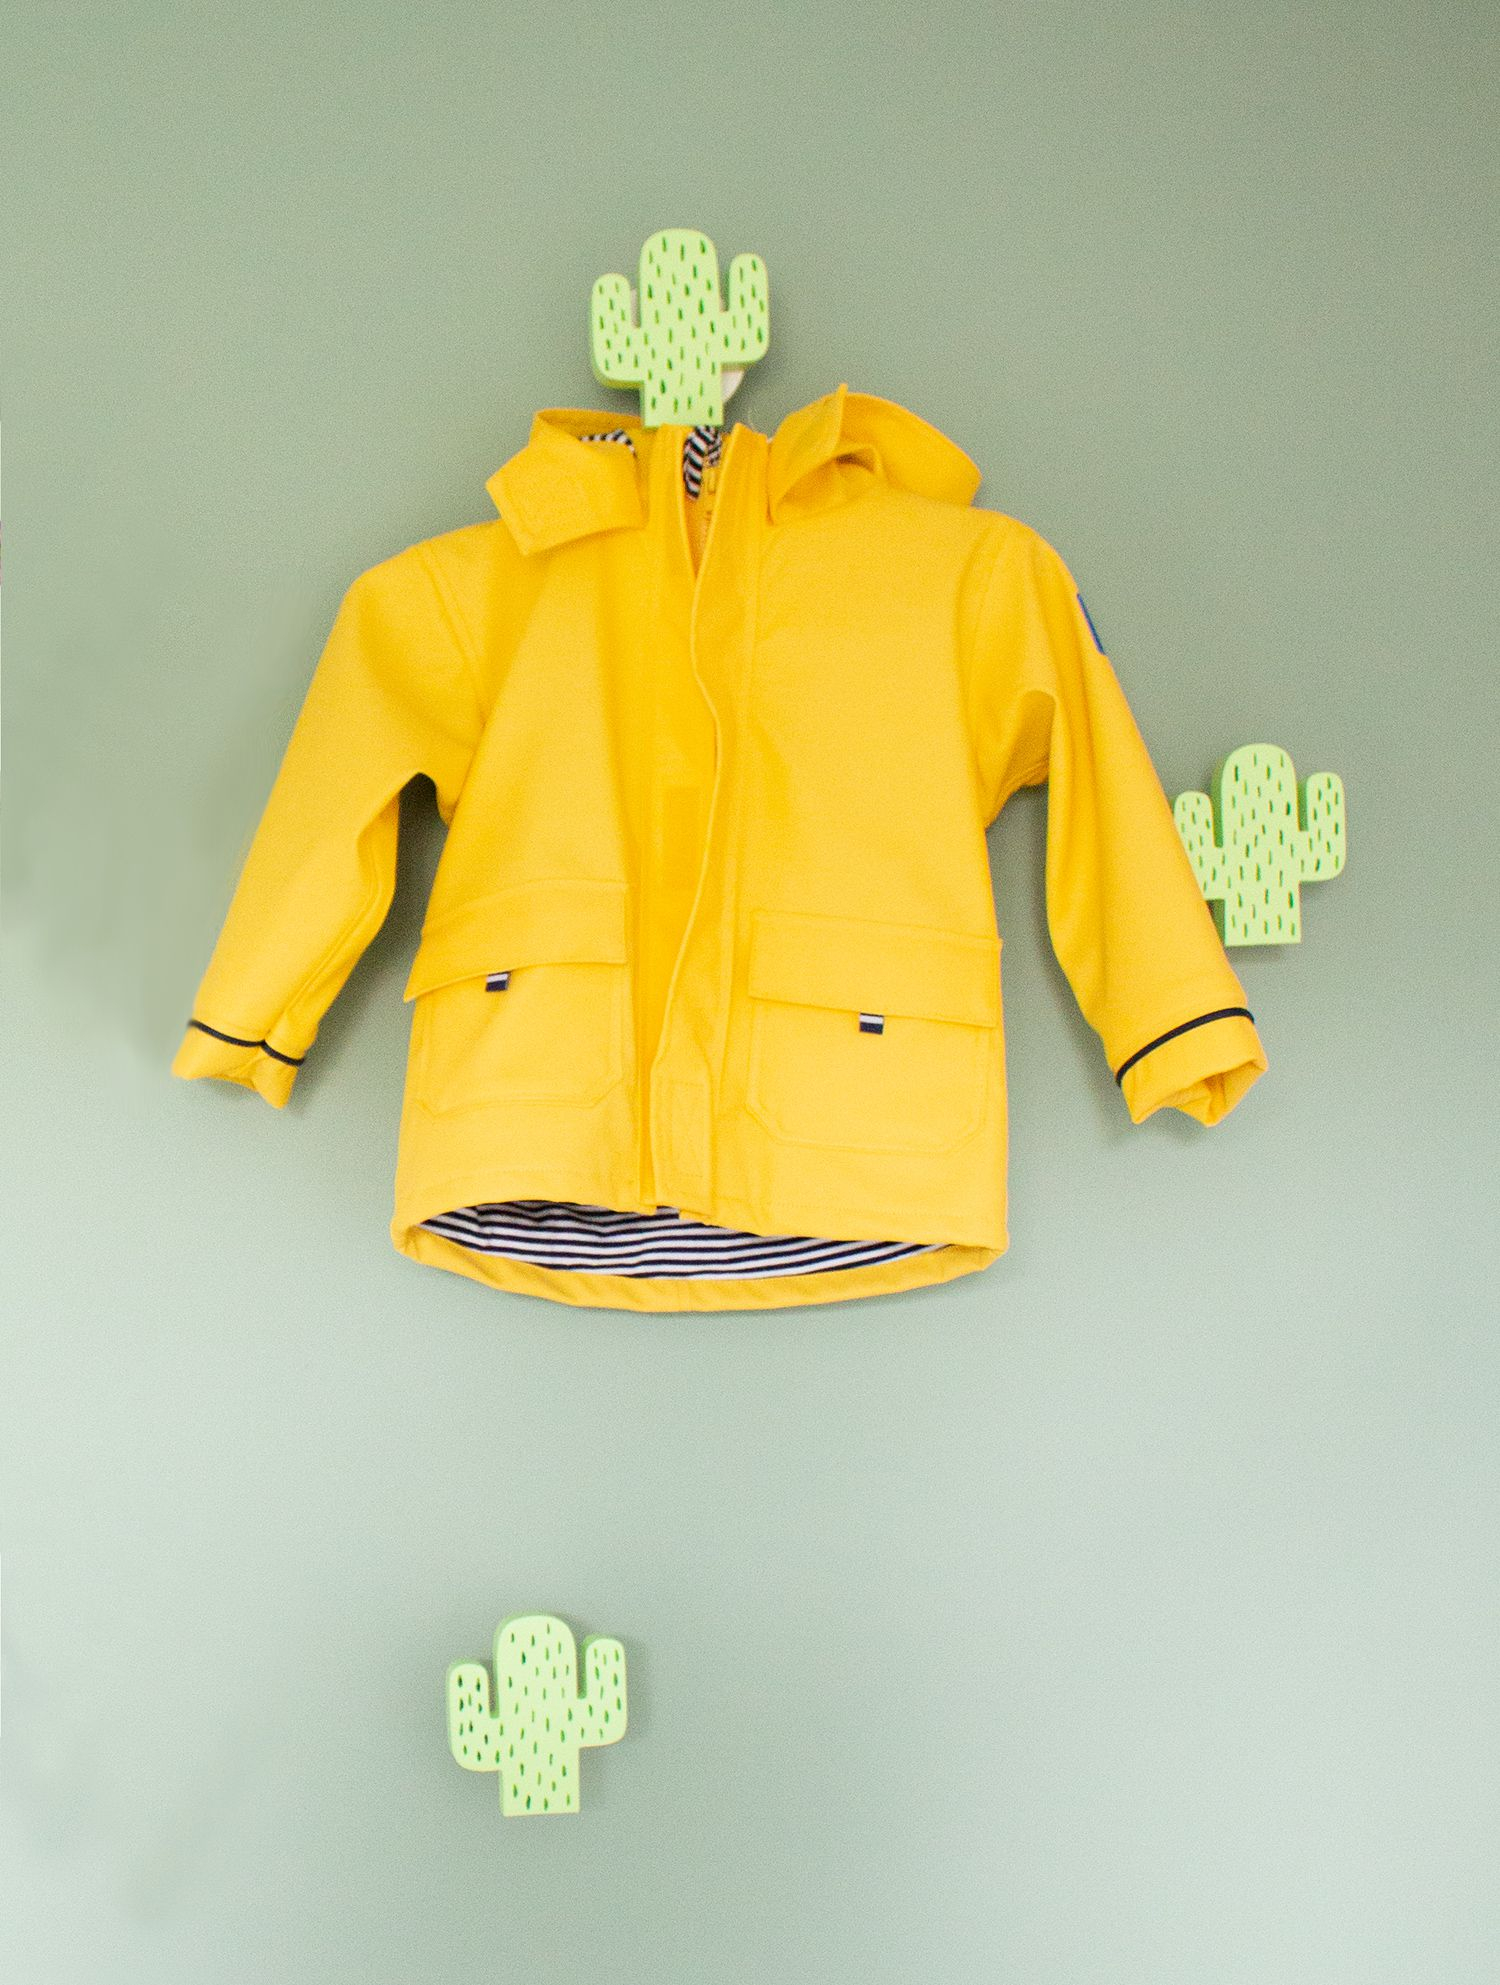 A close up of a child's coat hanging on a cactus shaped hook.